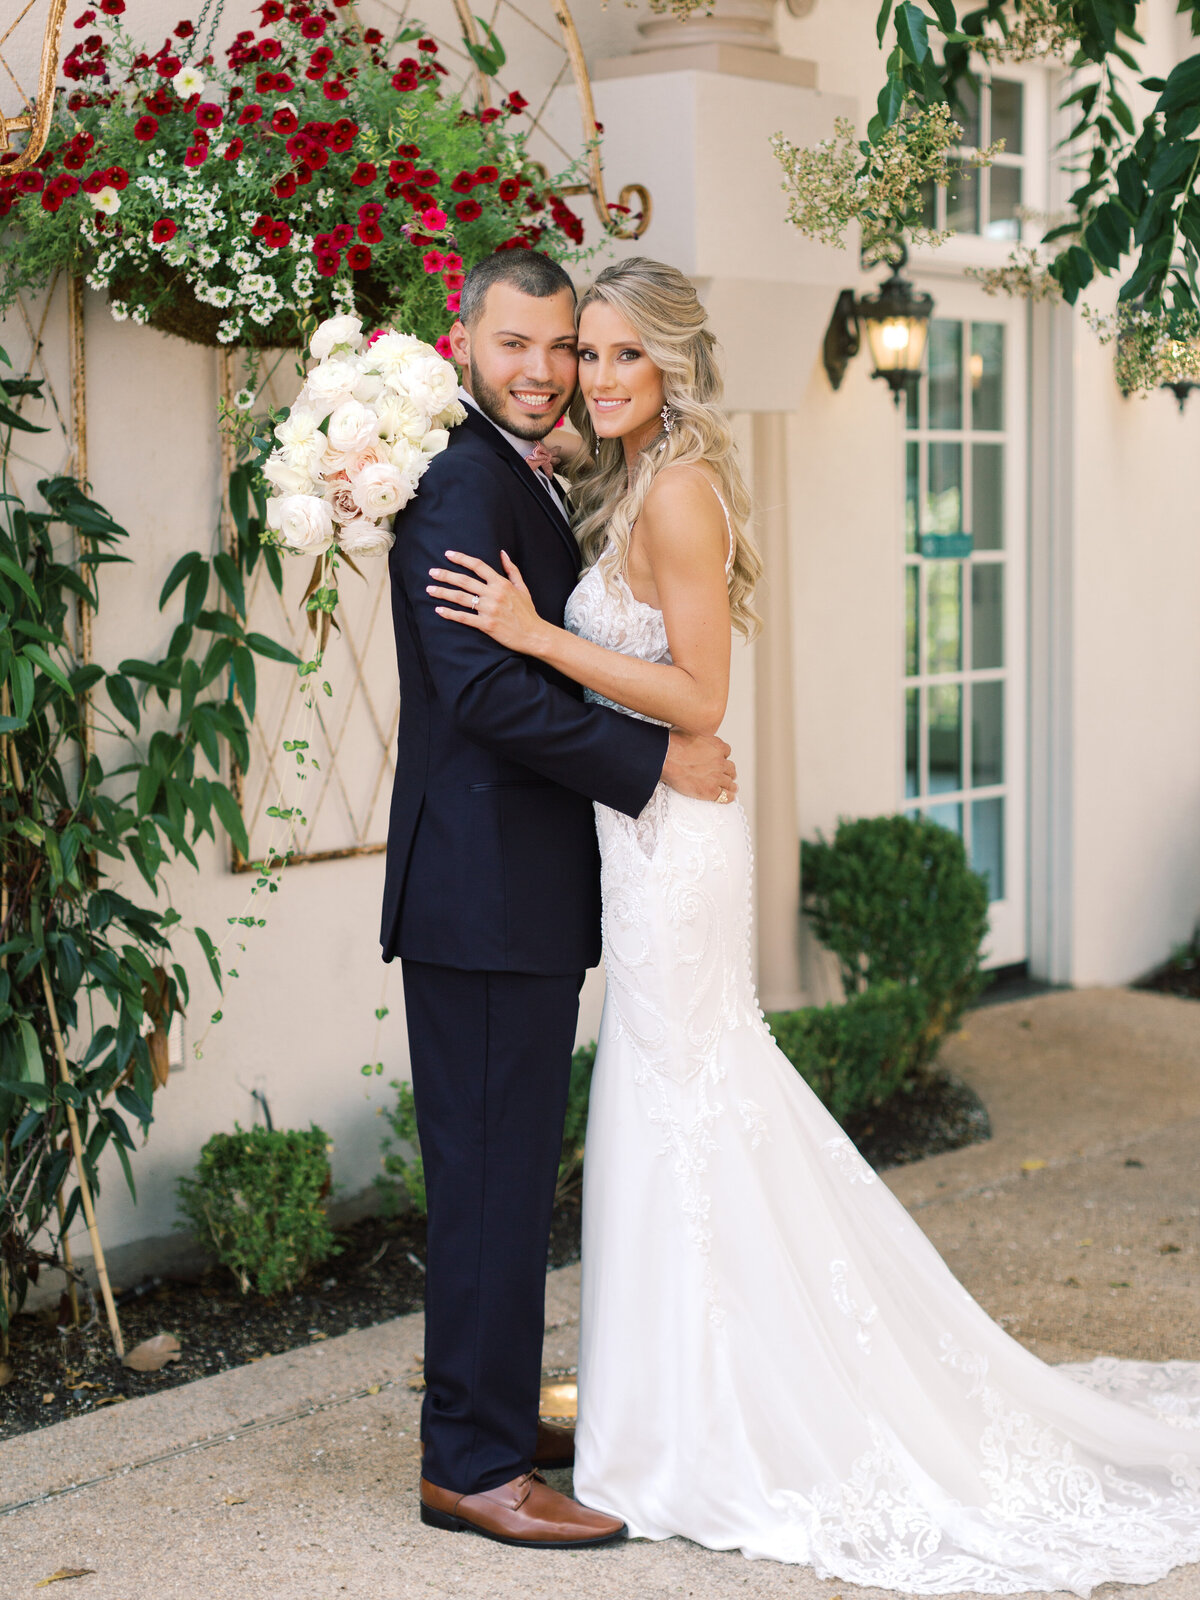 MLP-Aubrey-Tyler-Morais-Vineyards-Winery-Wedding-74